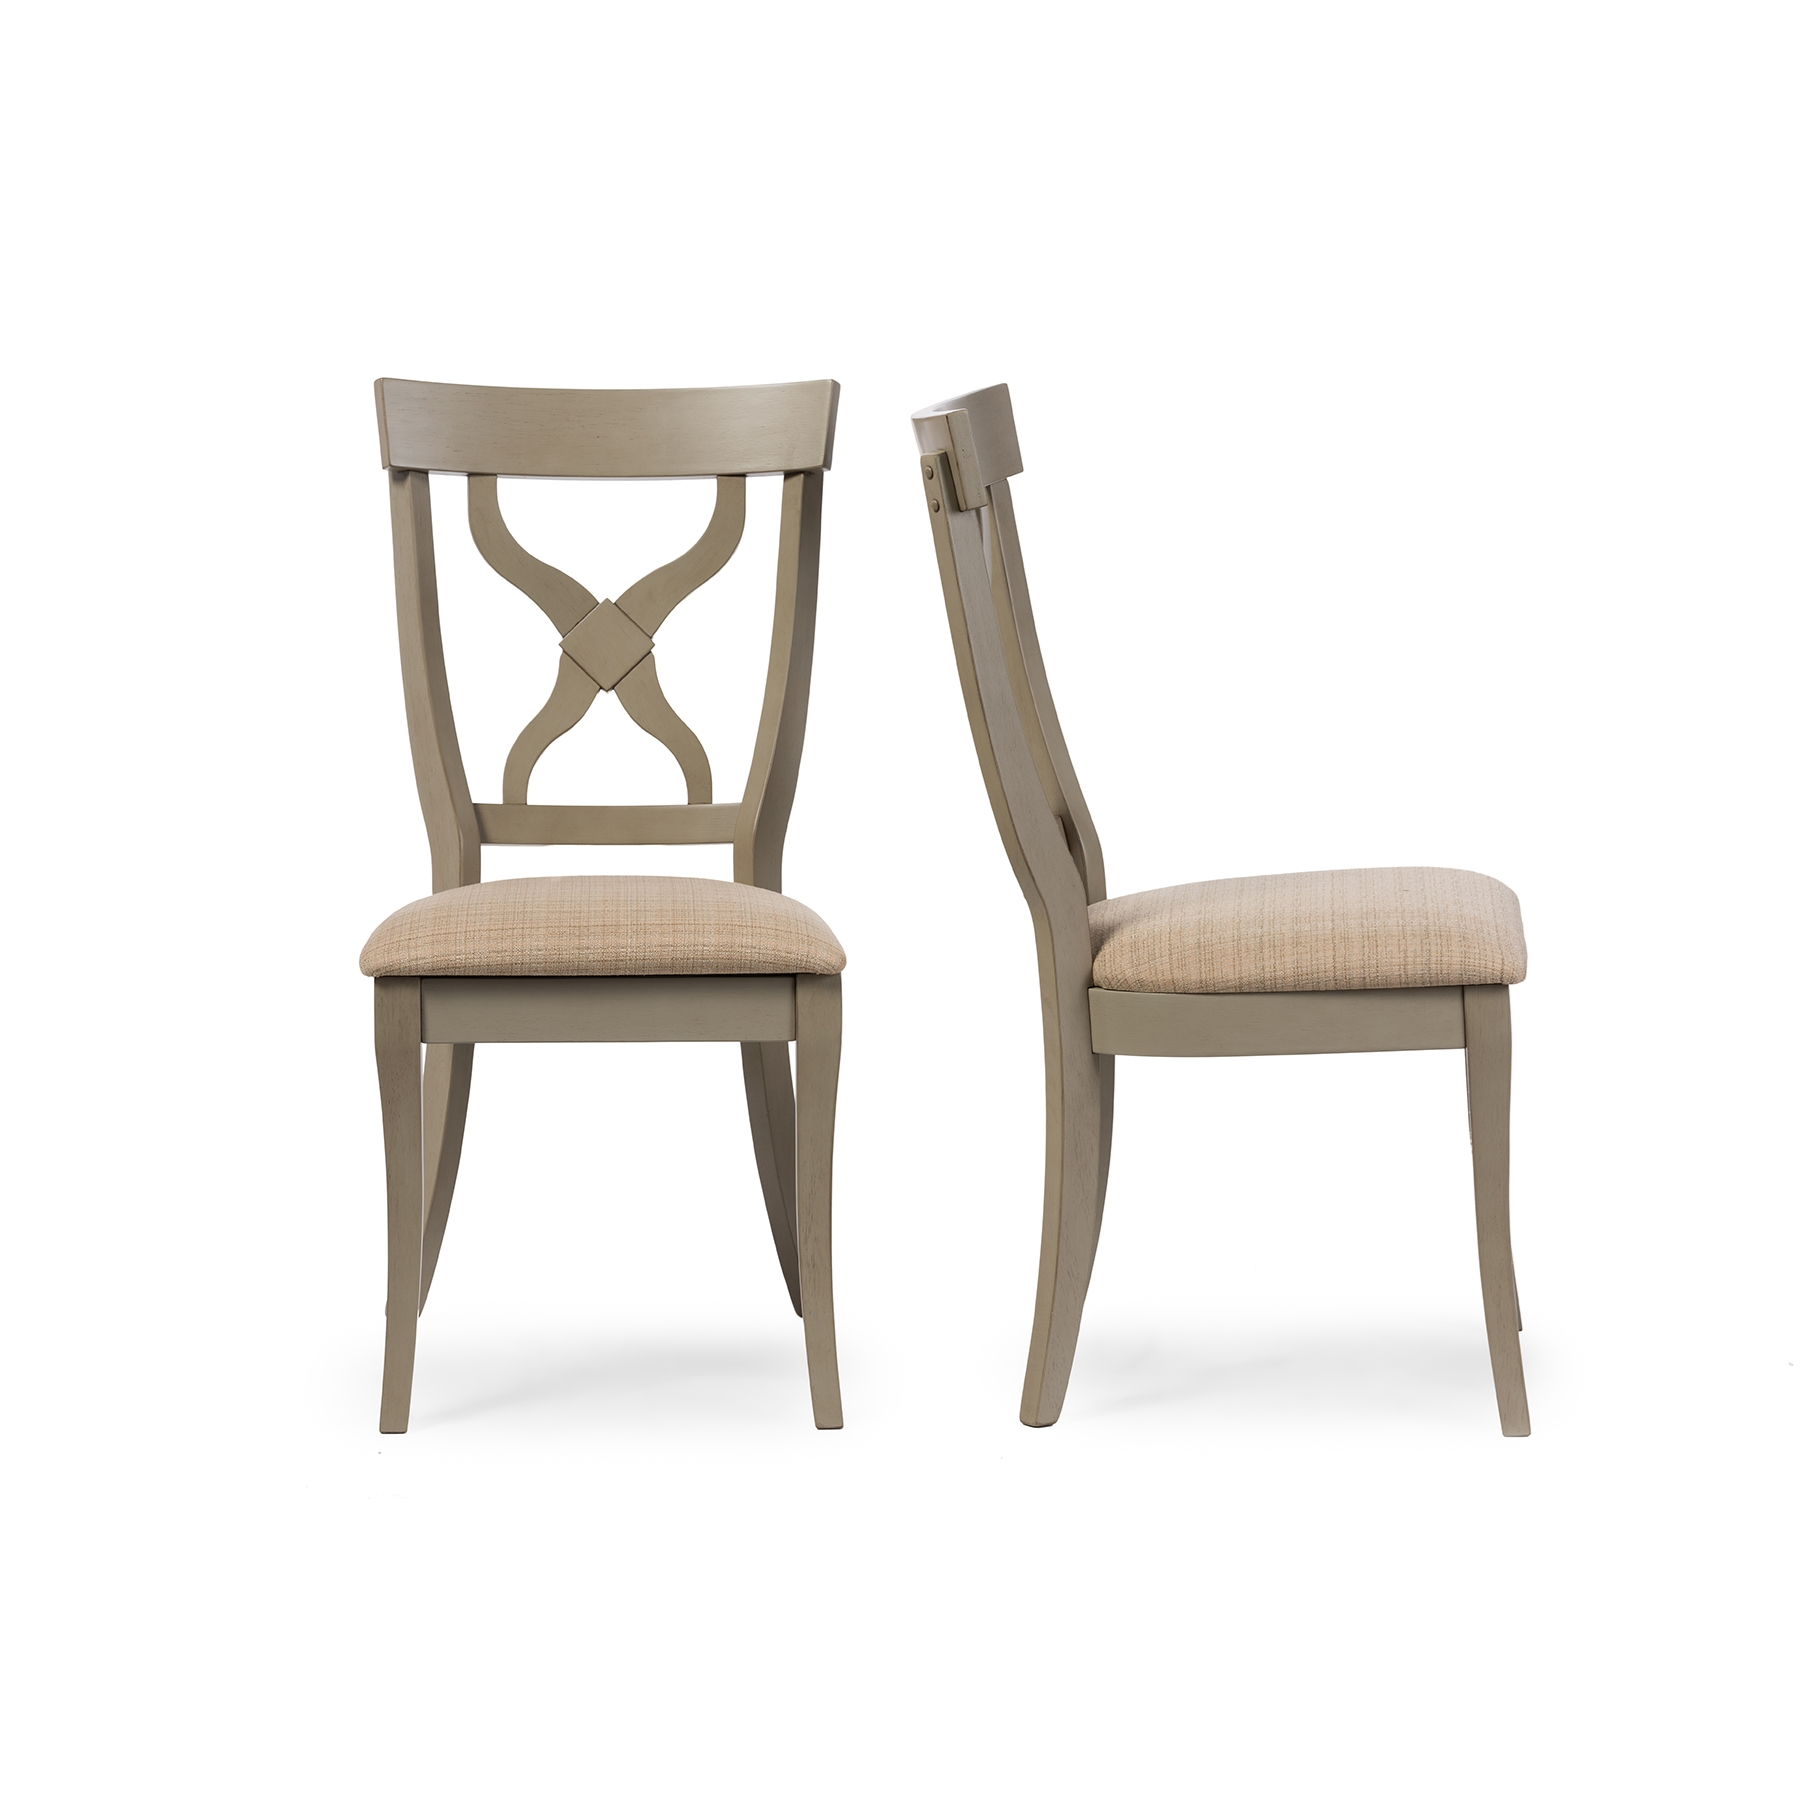 Genial Baxton Studio | Wholesale Dining Chairs | Wholesale Dining Room Furniture | Baxton  Studio Furniture